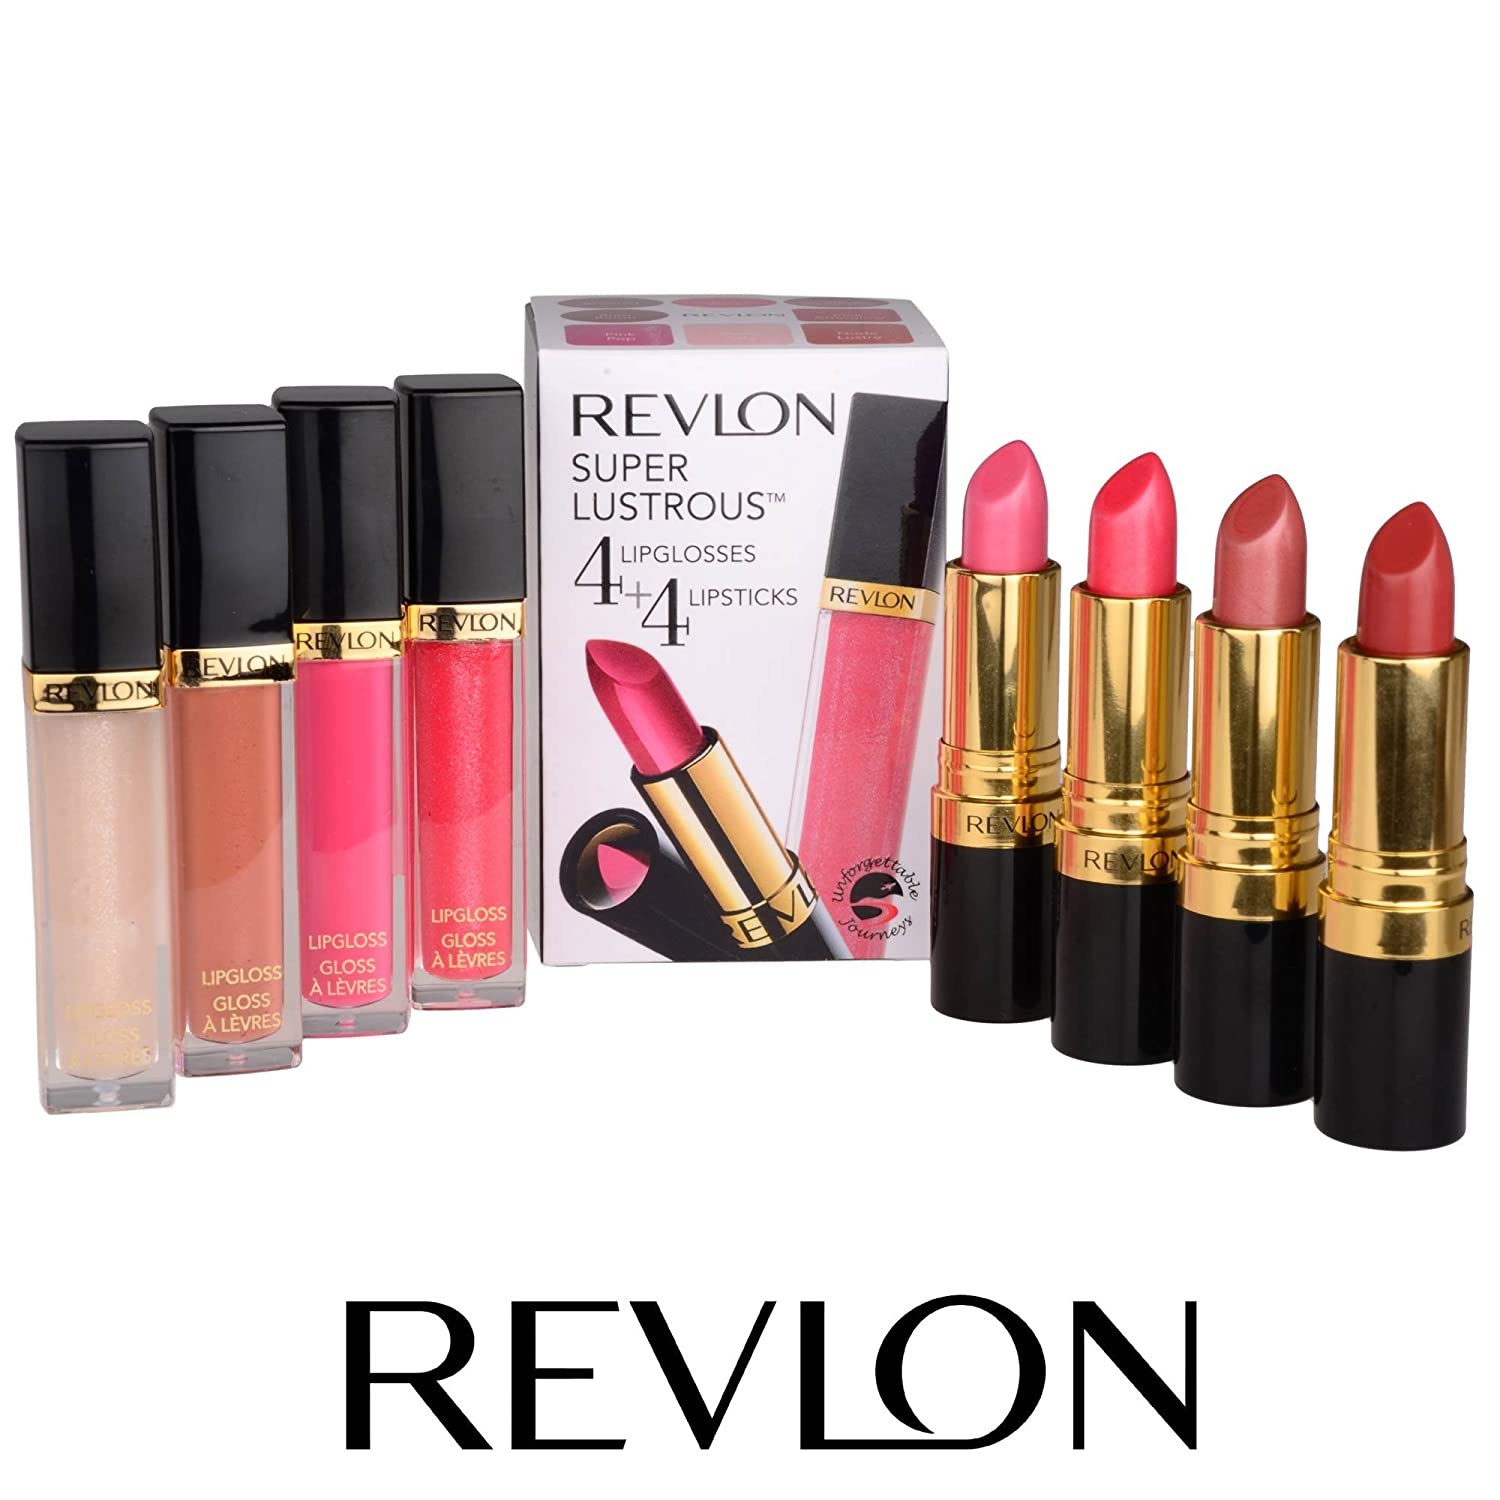 Revlon Super Lustrous 4 Lipgloss 5.9ml and 4 Lipstick 4.2g Ladies Makeup Set In Red Pink Nude Rose Shades REVLON-846004